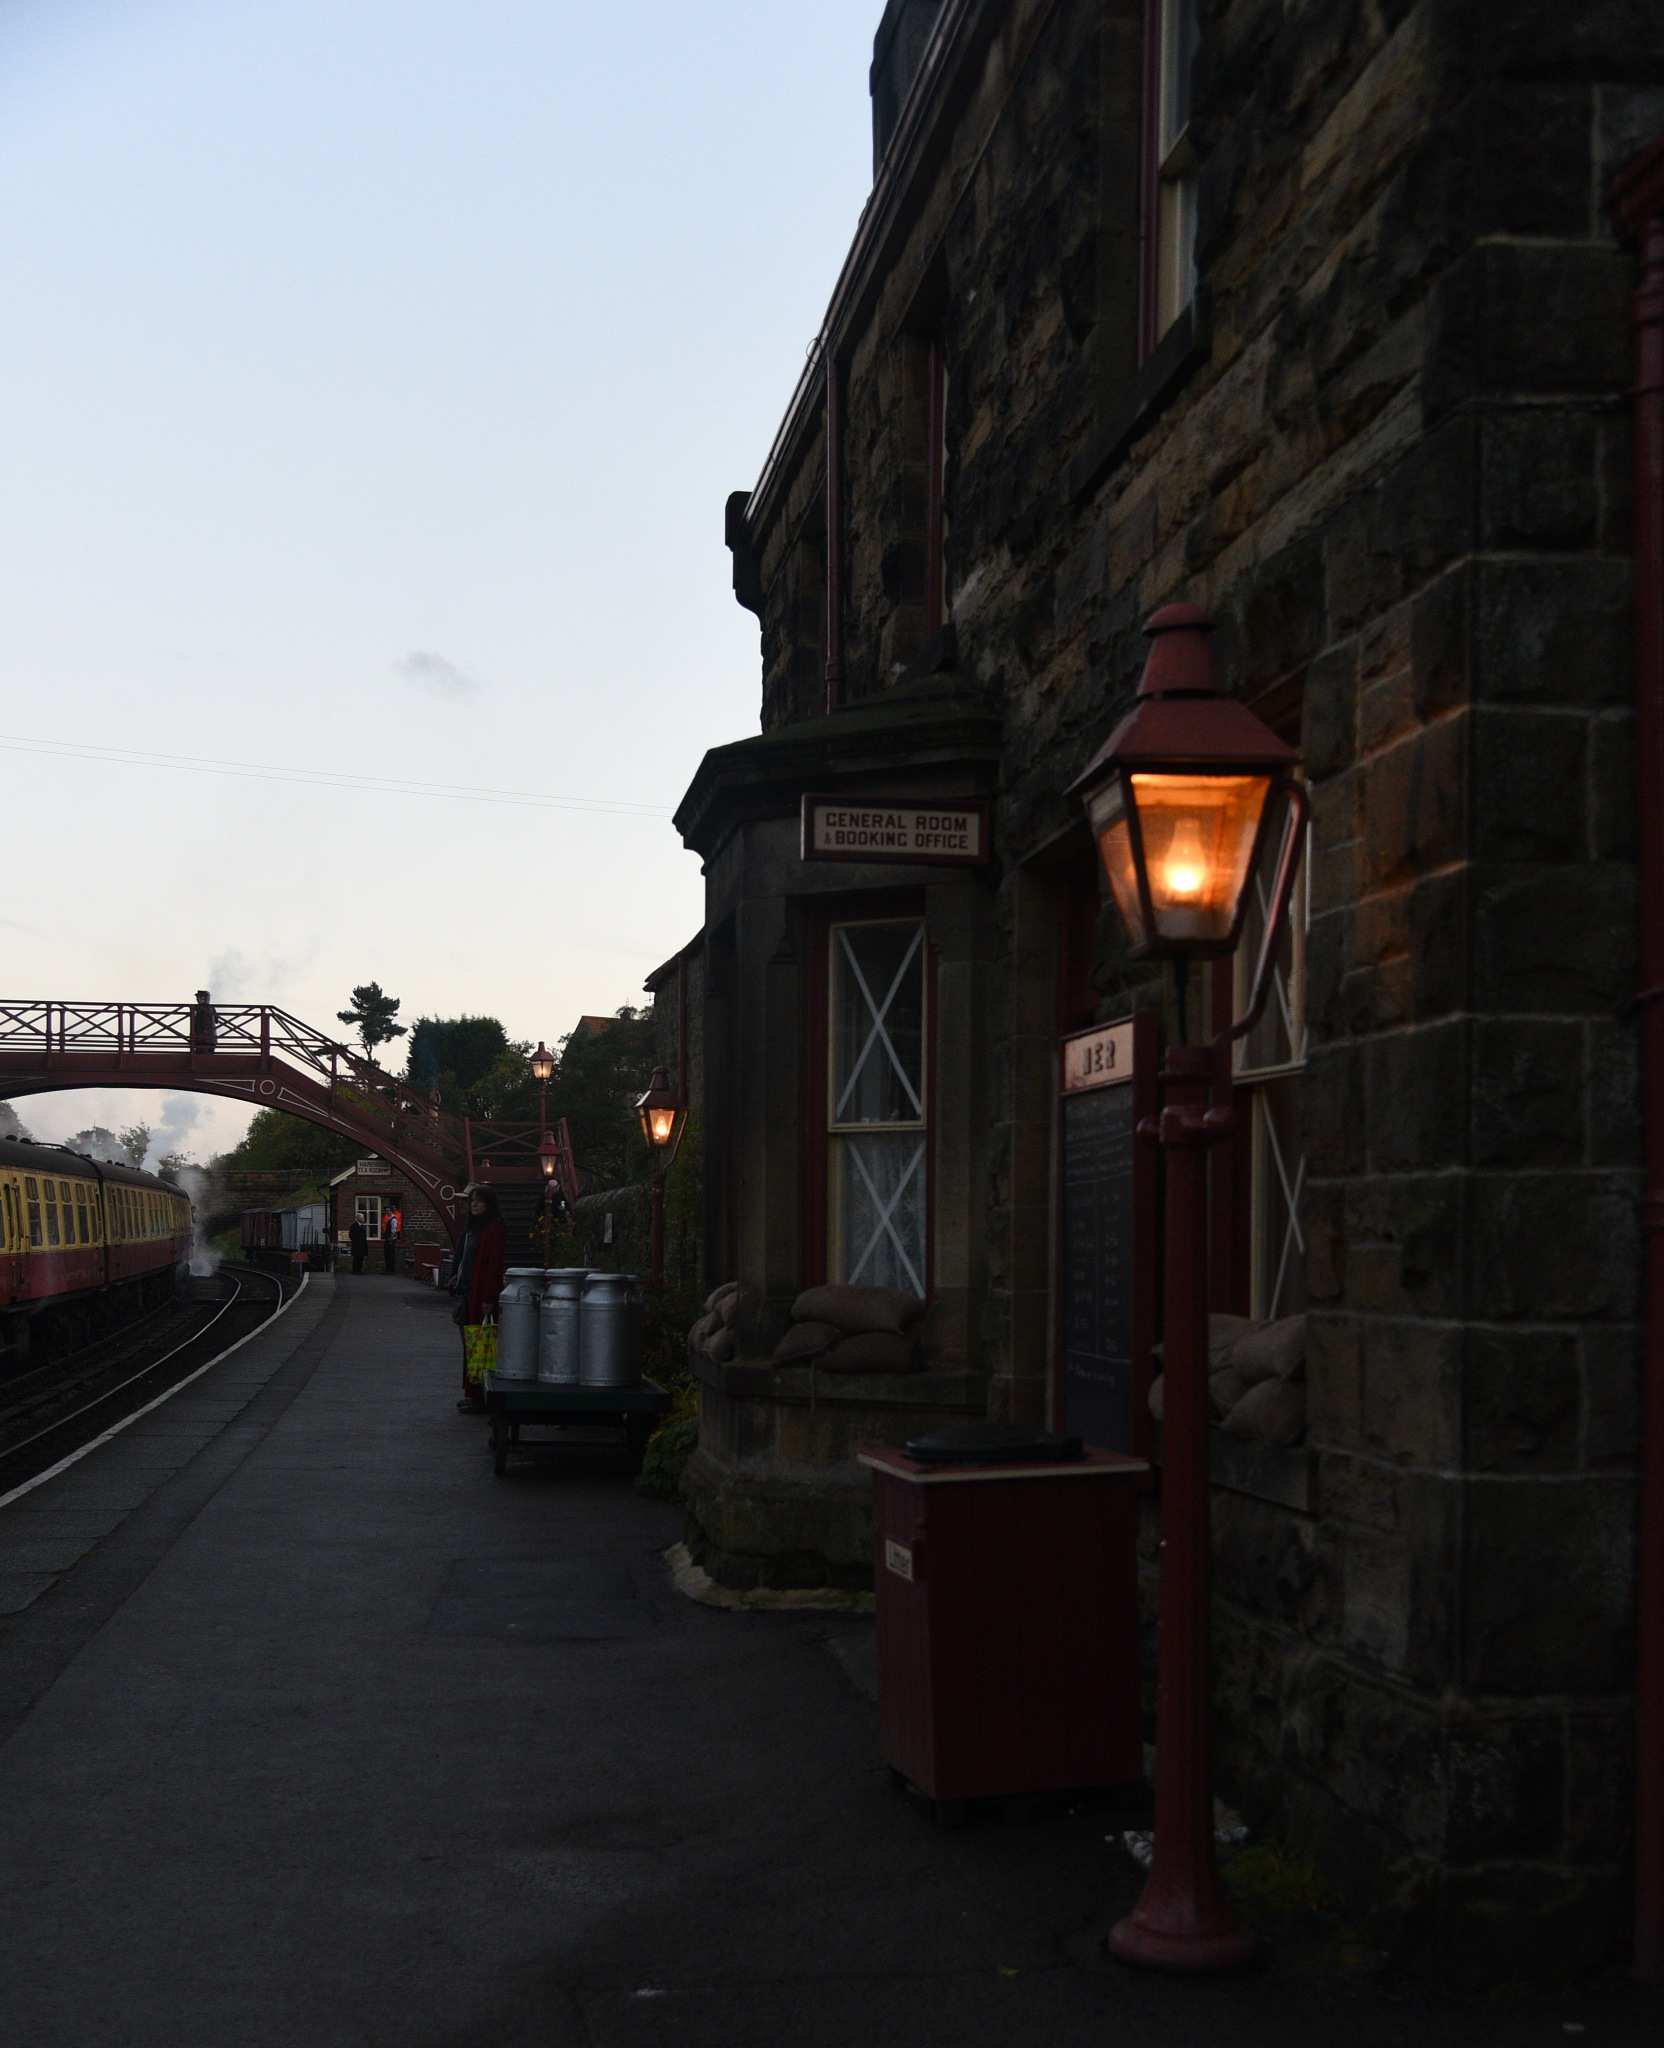 Goathland Station at dusk - aka 'Aidensfield'  from 'Heartbeat'  by coolcats